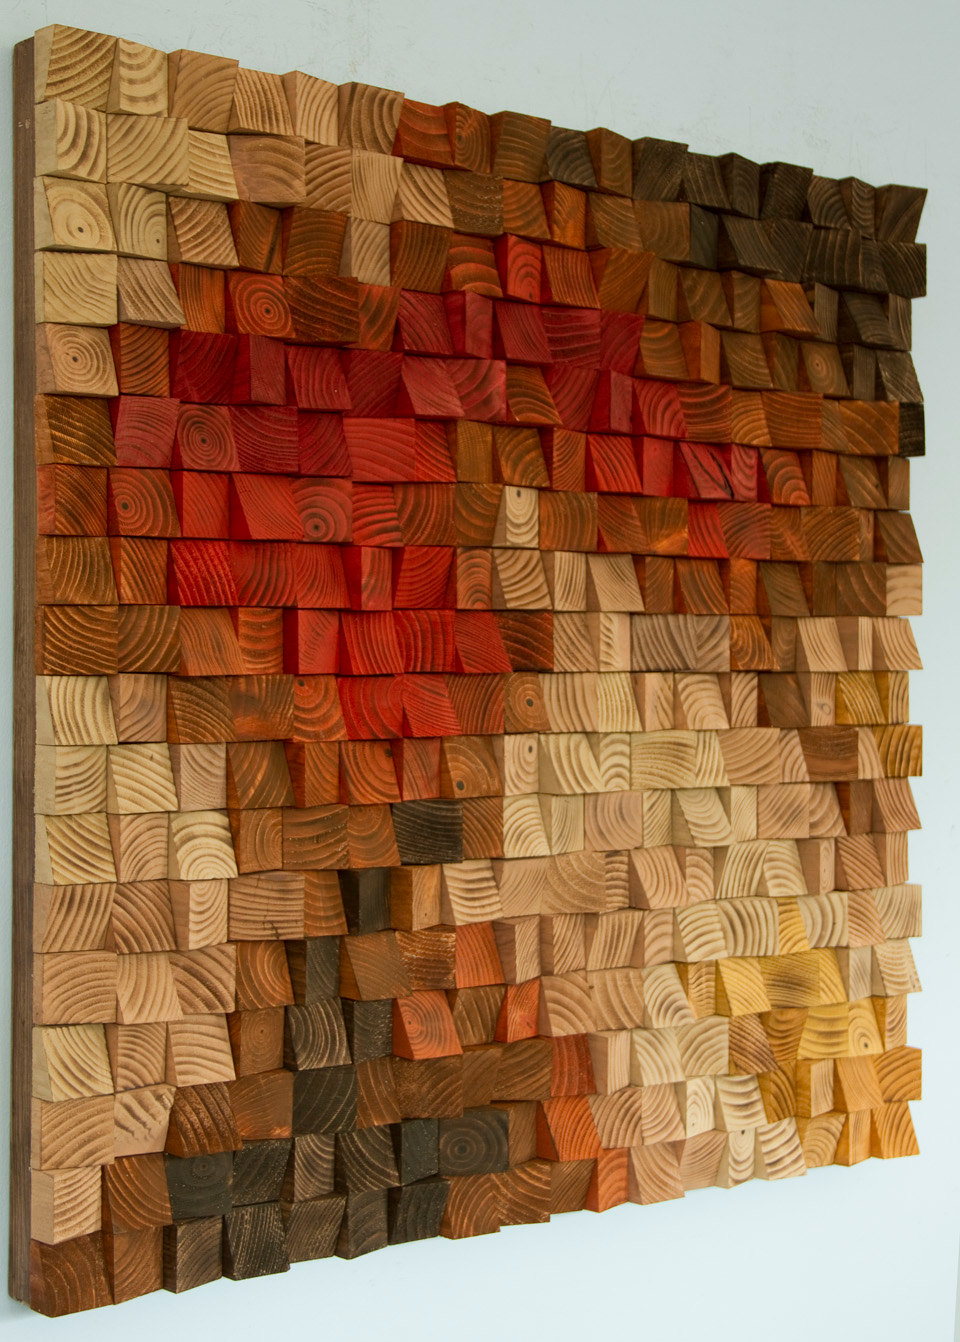 Large Rustic wood wall Art, wood wall sculpture, abstract